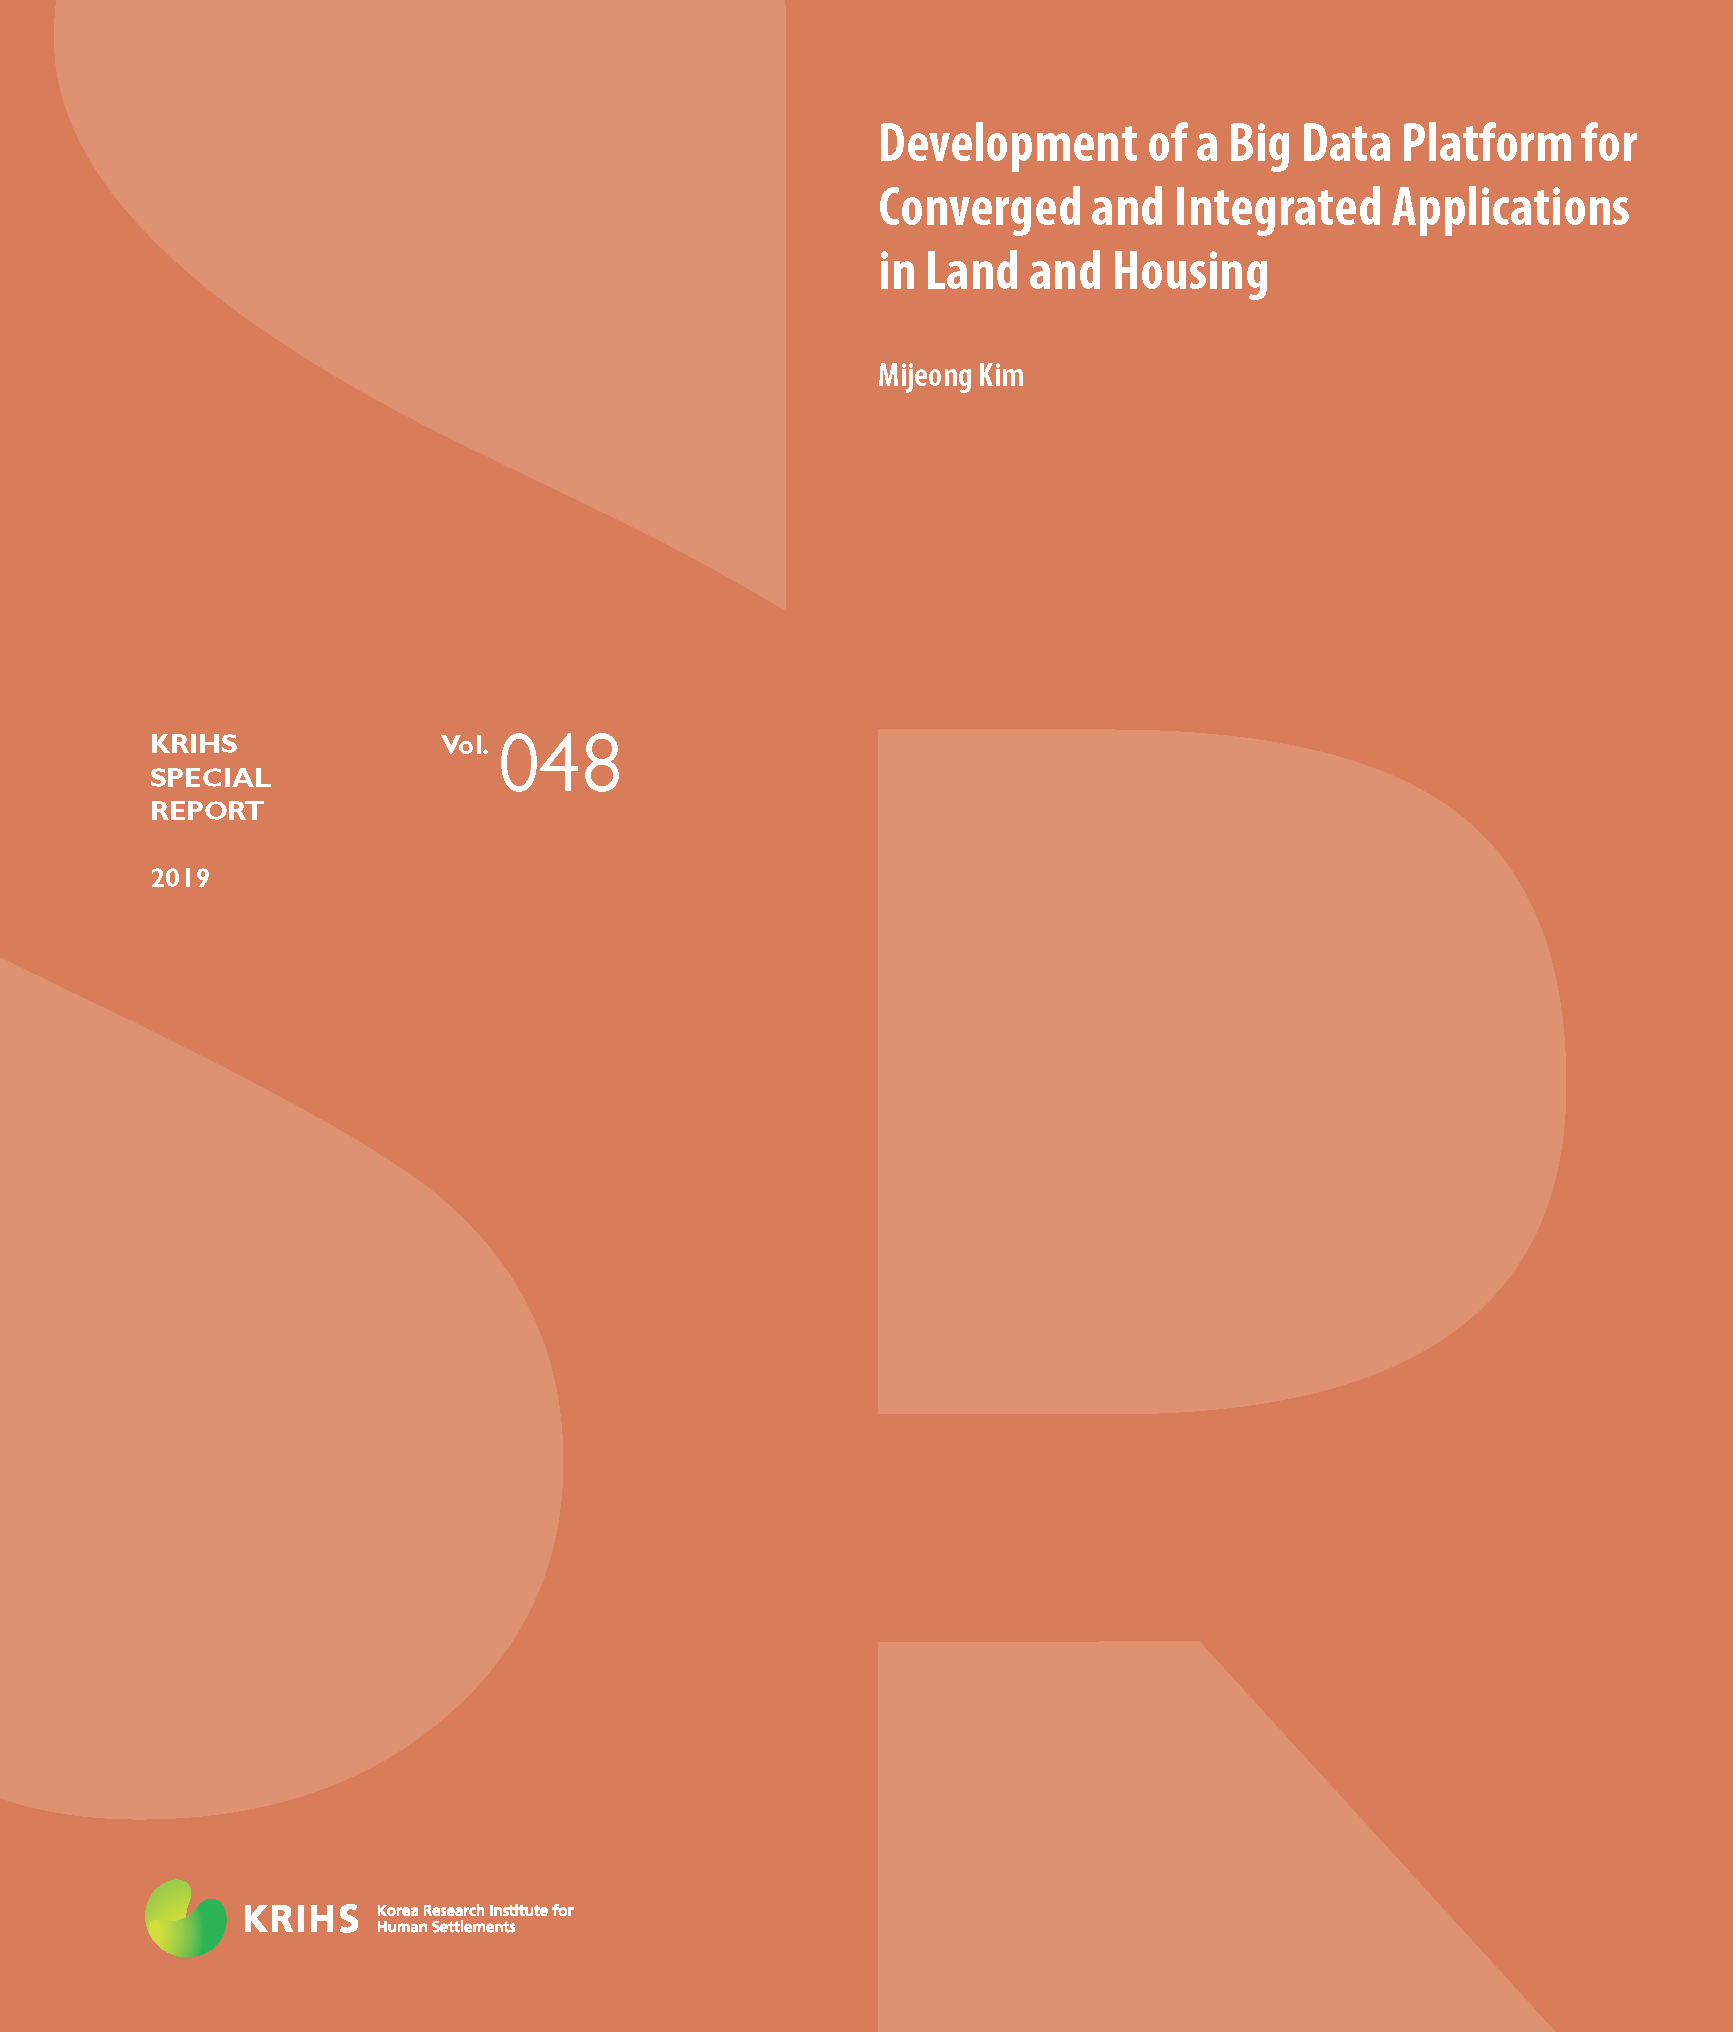 [KRIHS SPECIAL REPORT 48] Development of a Big Data Platform for Converged and Integrated Applications in Land and Housing